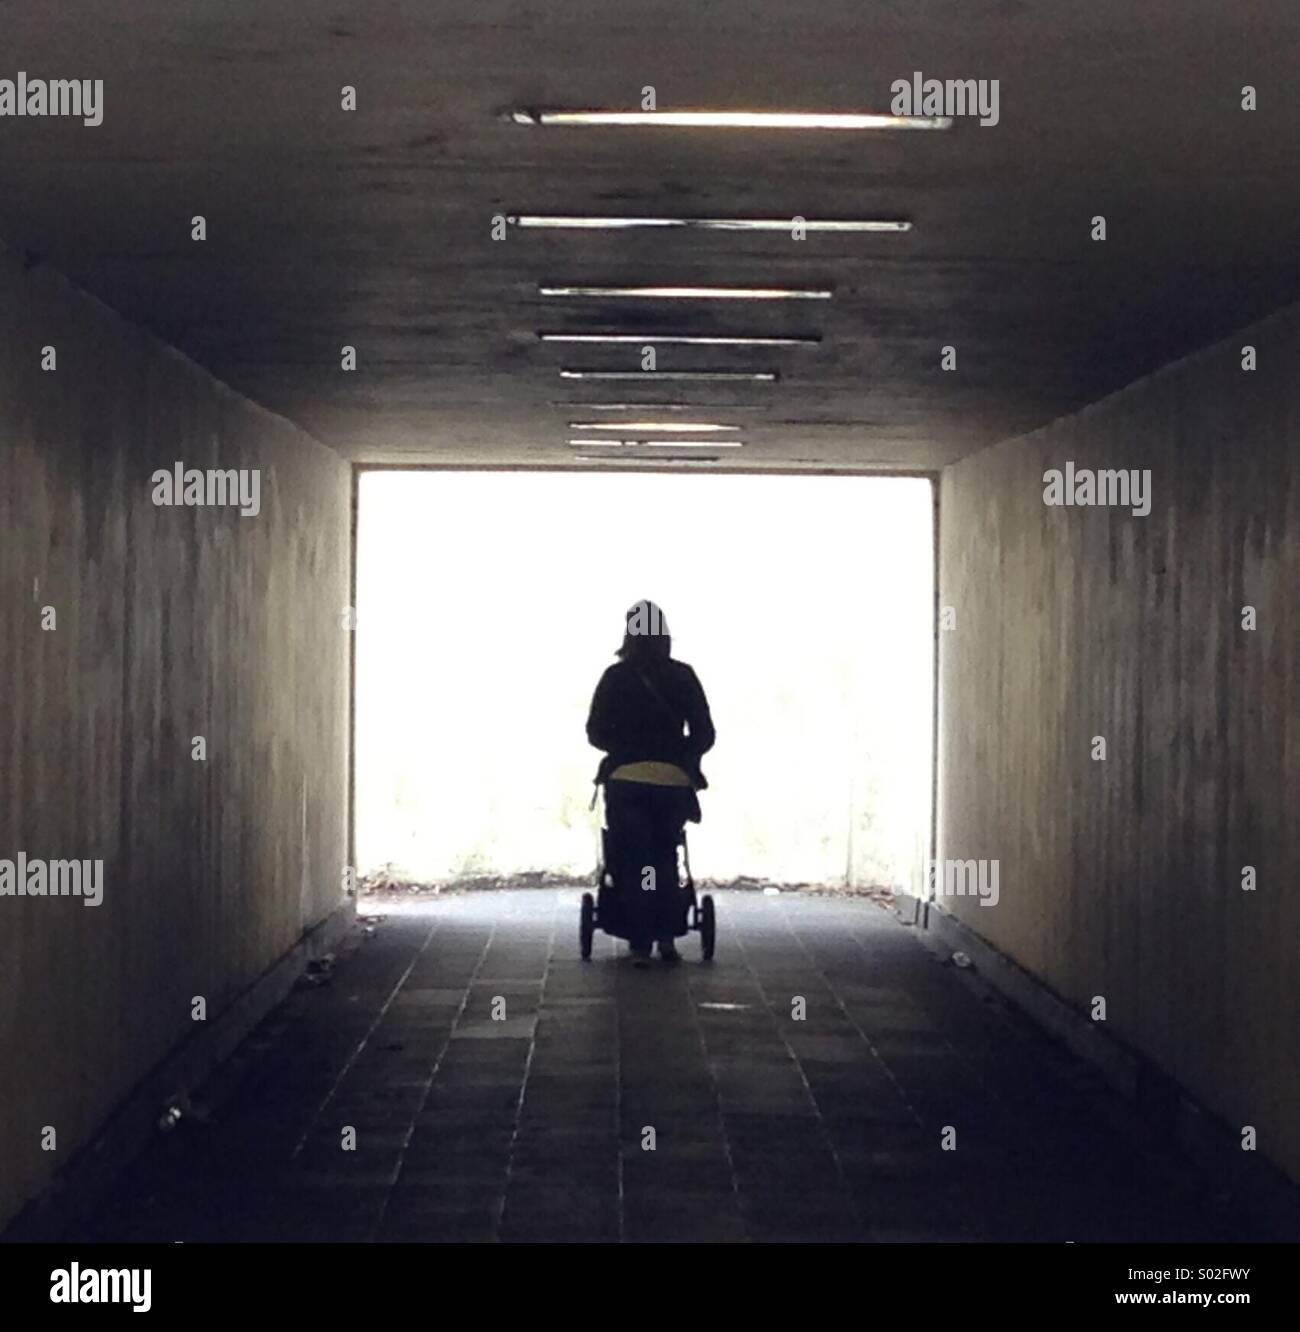 A woman makes her way through an underground subway pushing a pram - Stock Image